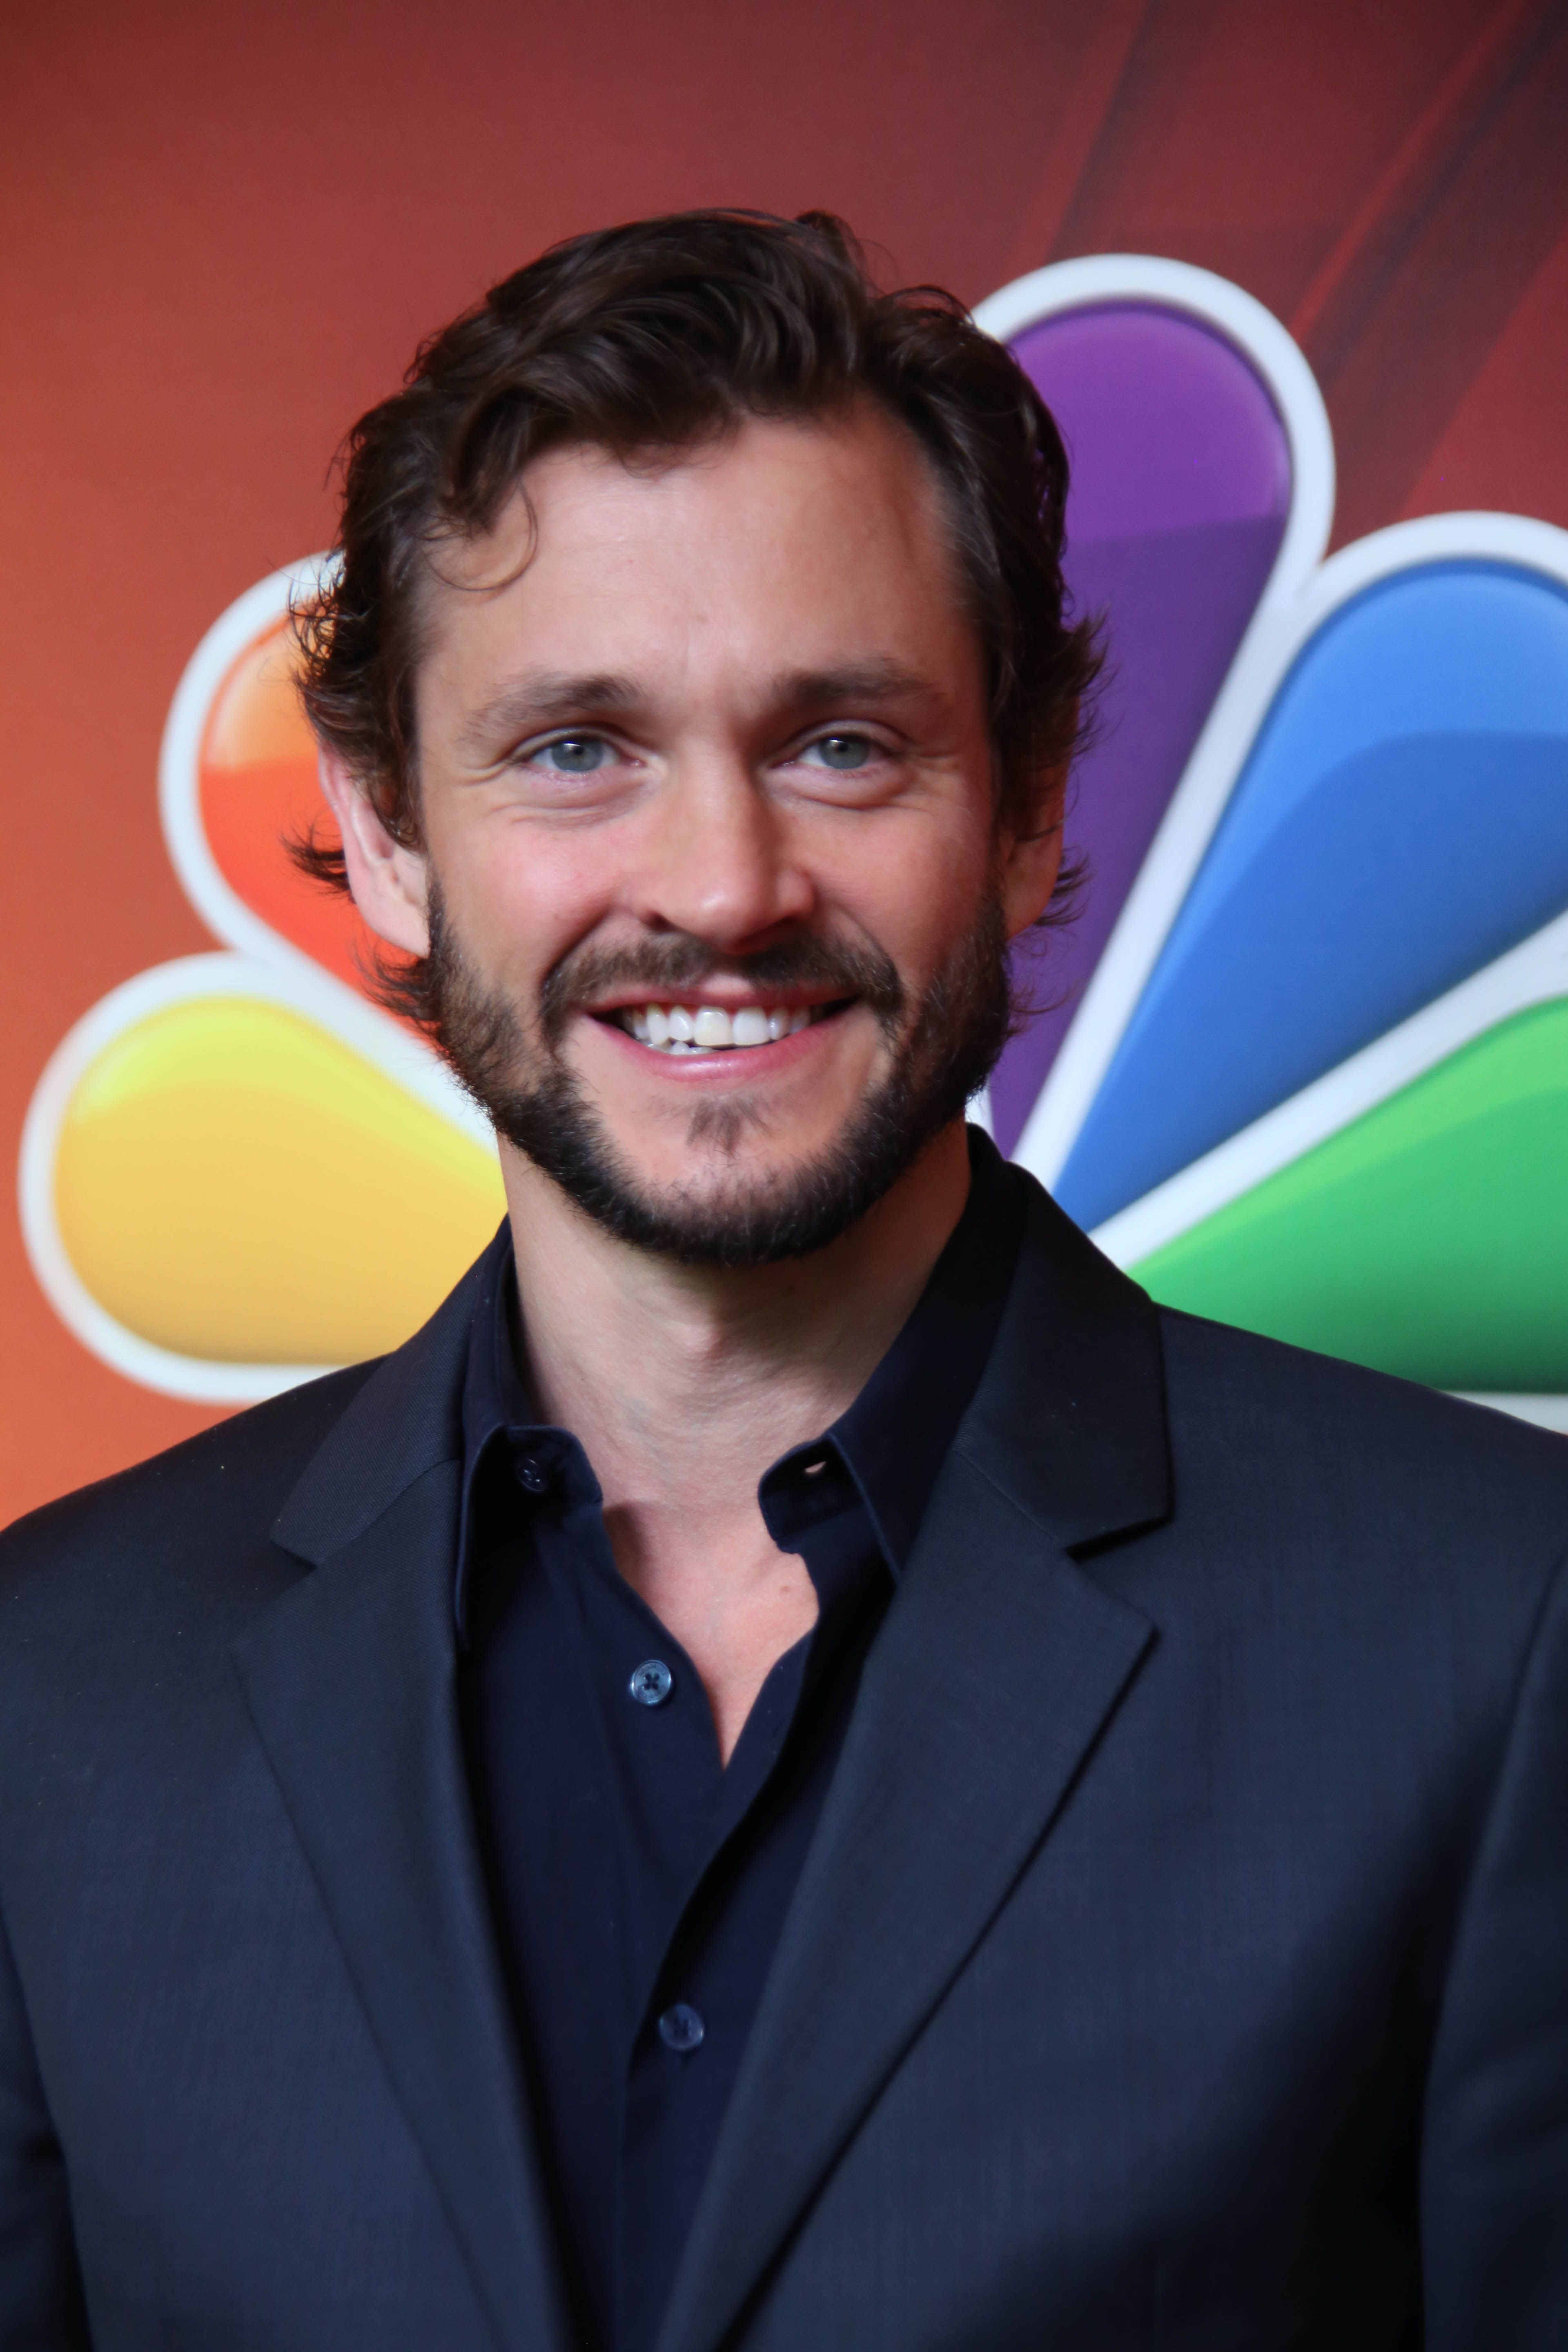 Hugh Dancy, 2014 NBC Upfront Presentation (high quality)